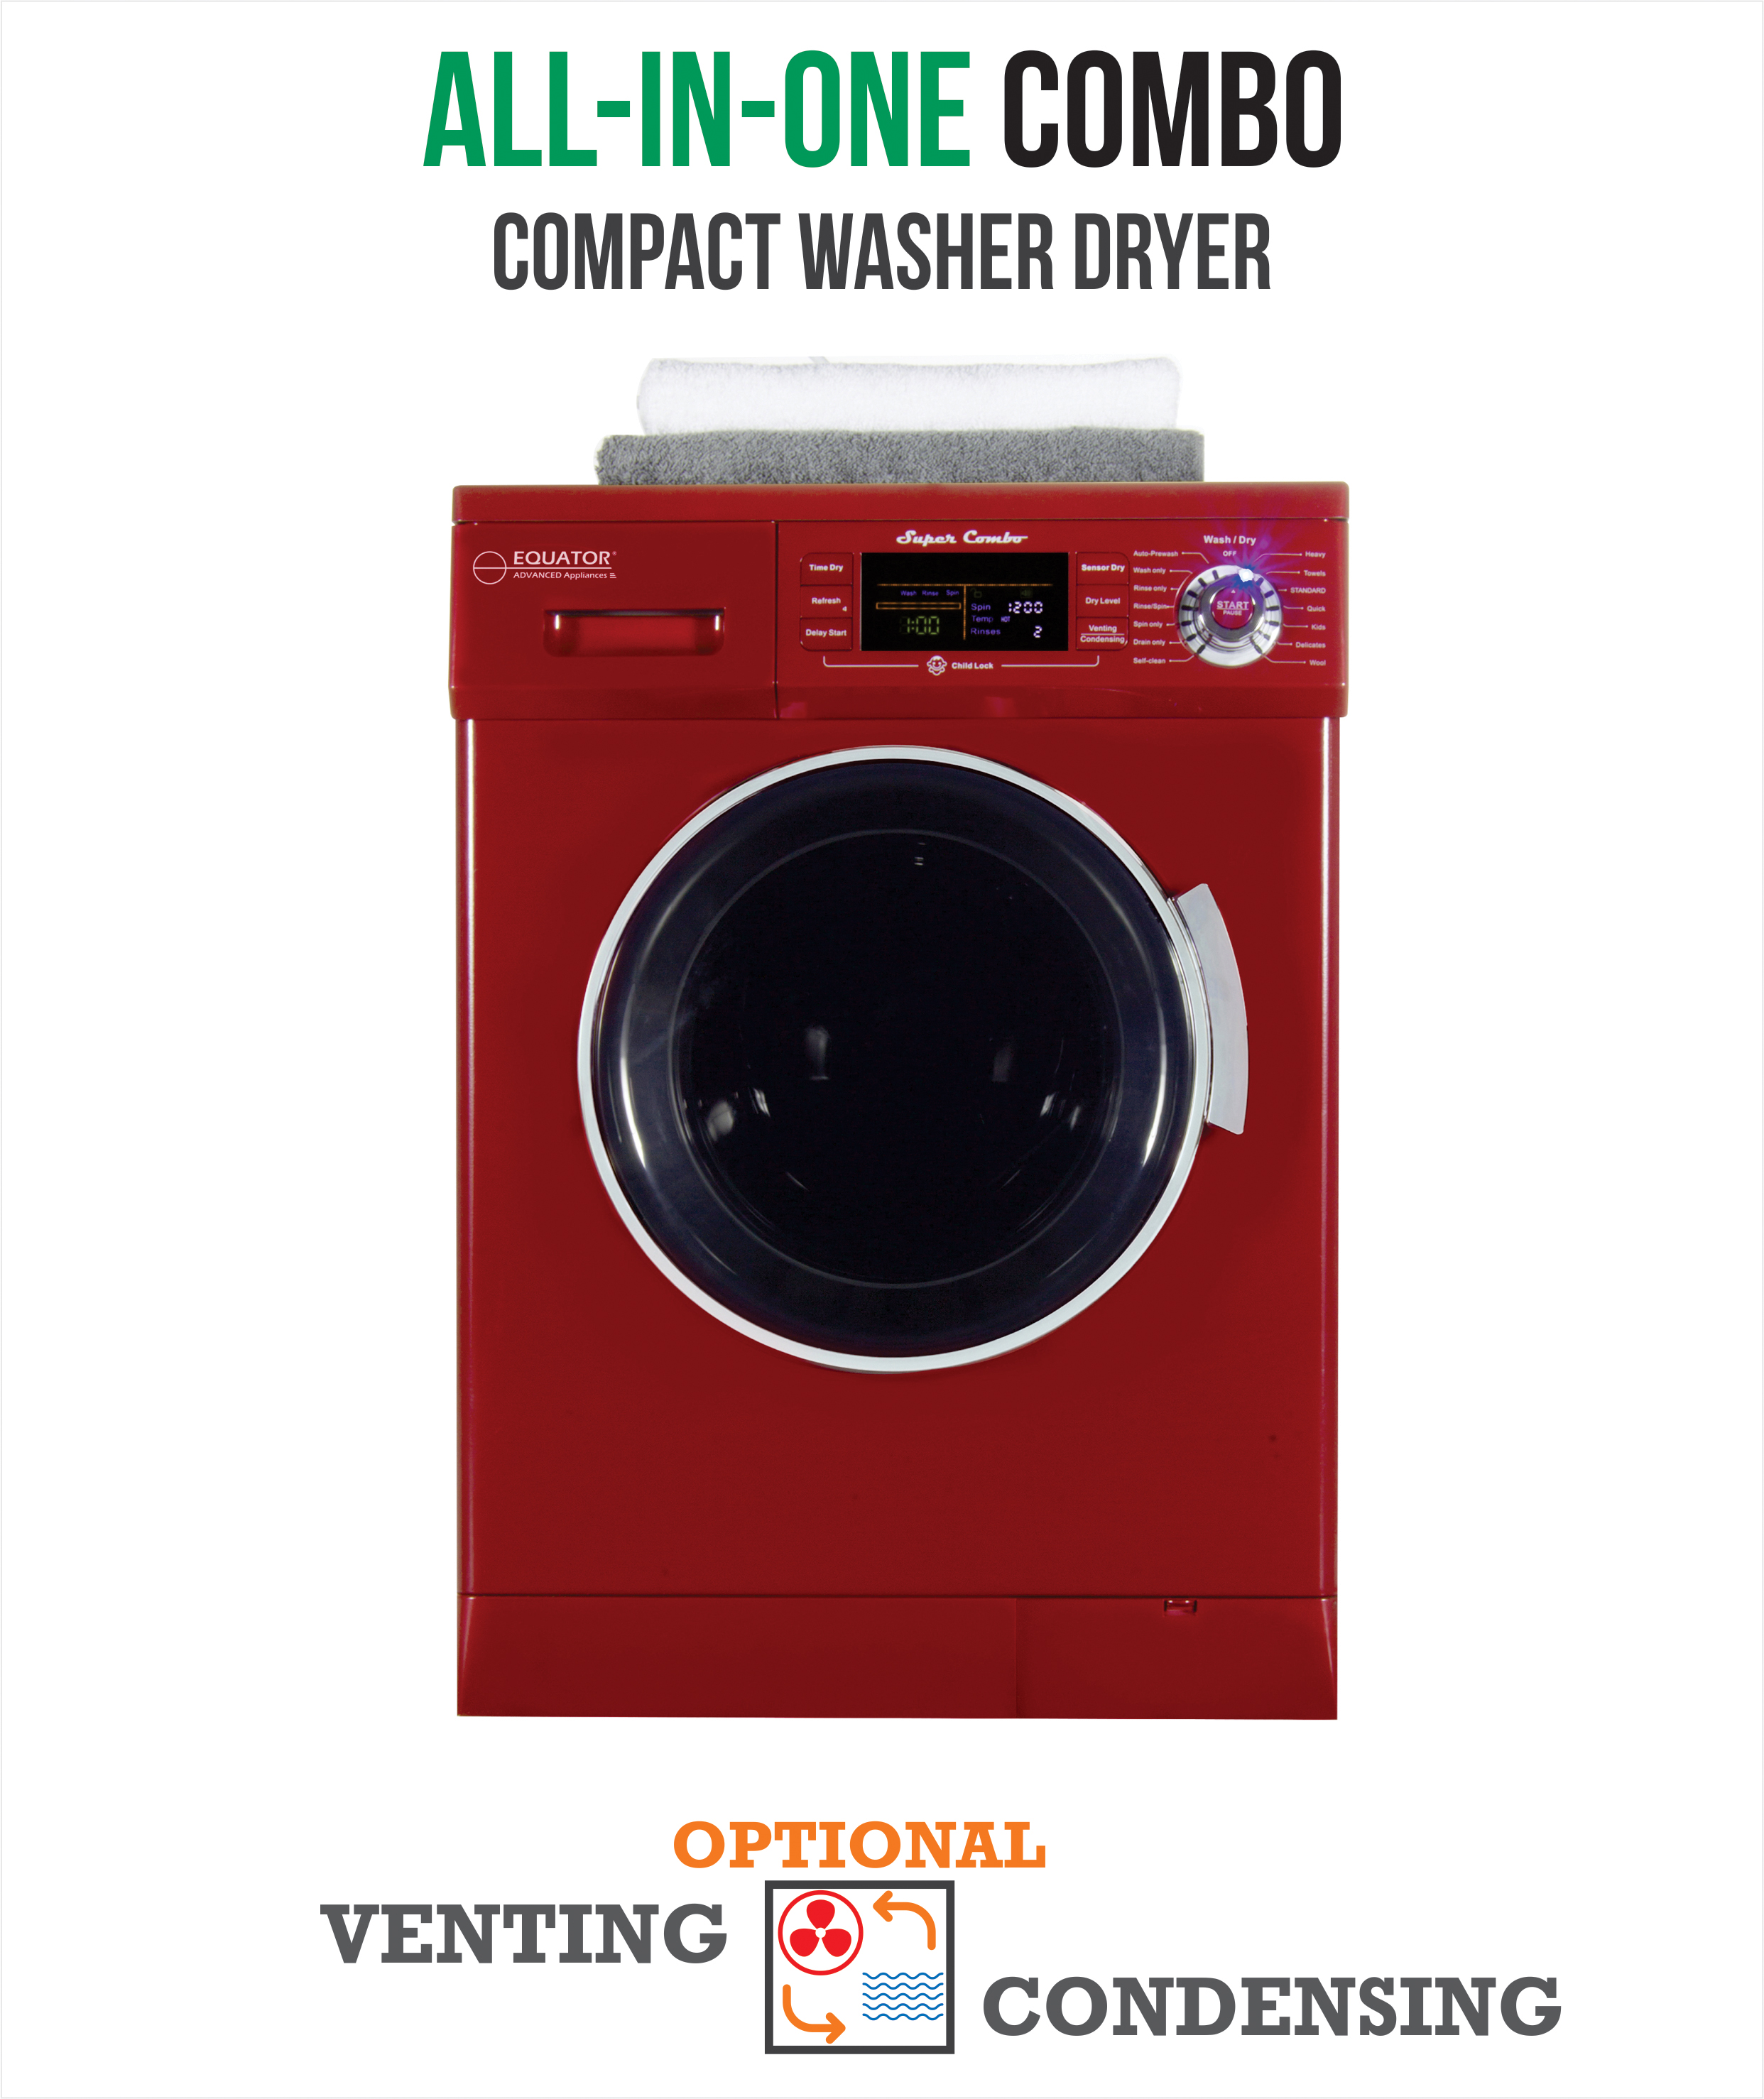 All-in-One 13 lb. 1200 RPM Compact Combo Washer Dryer with Optional Condensing/ Venting, Sensor Dry, Auto Water Level, Merlot.